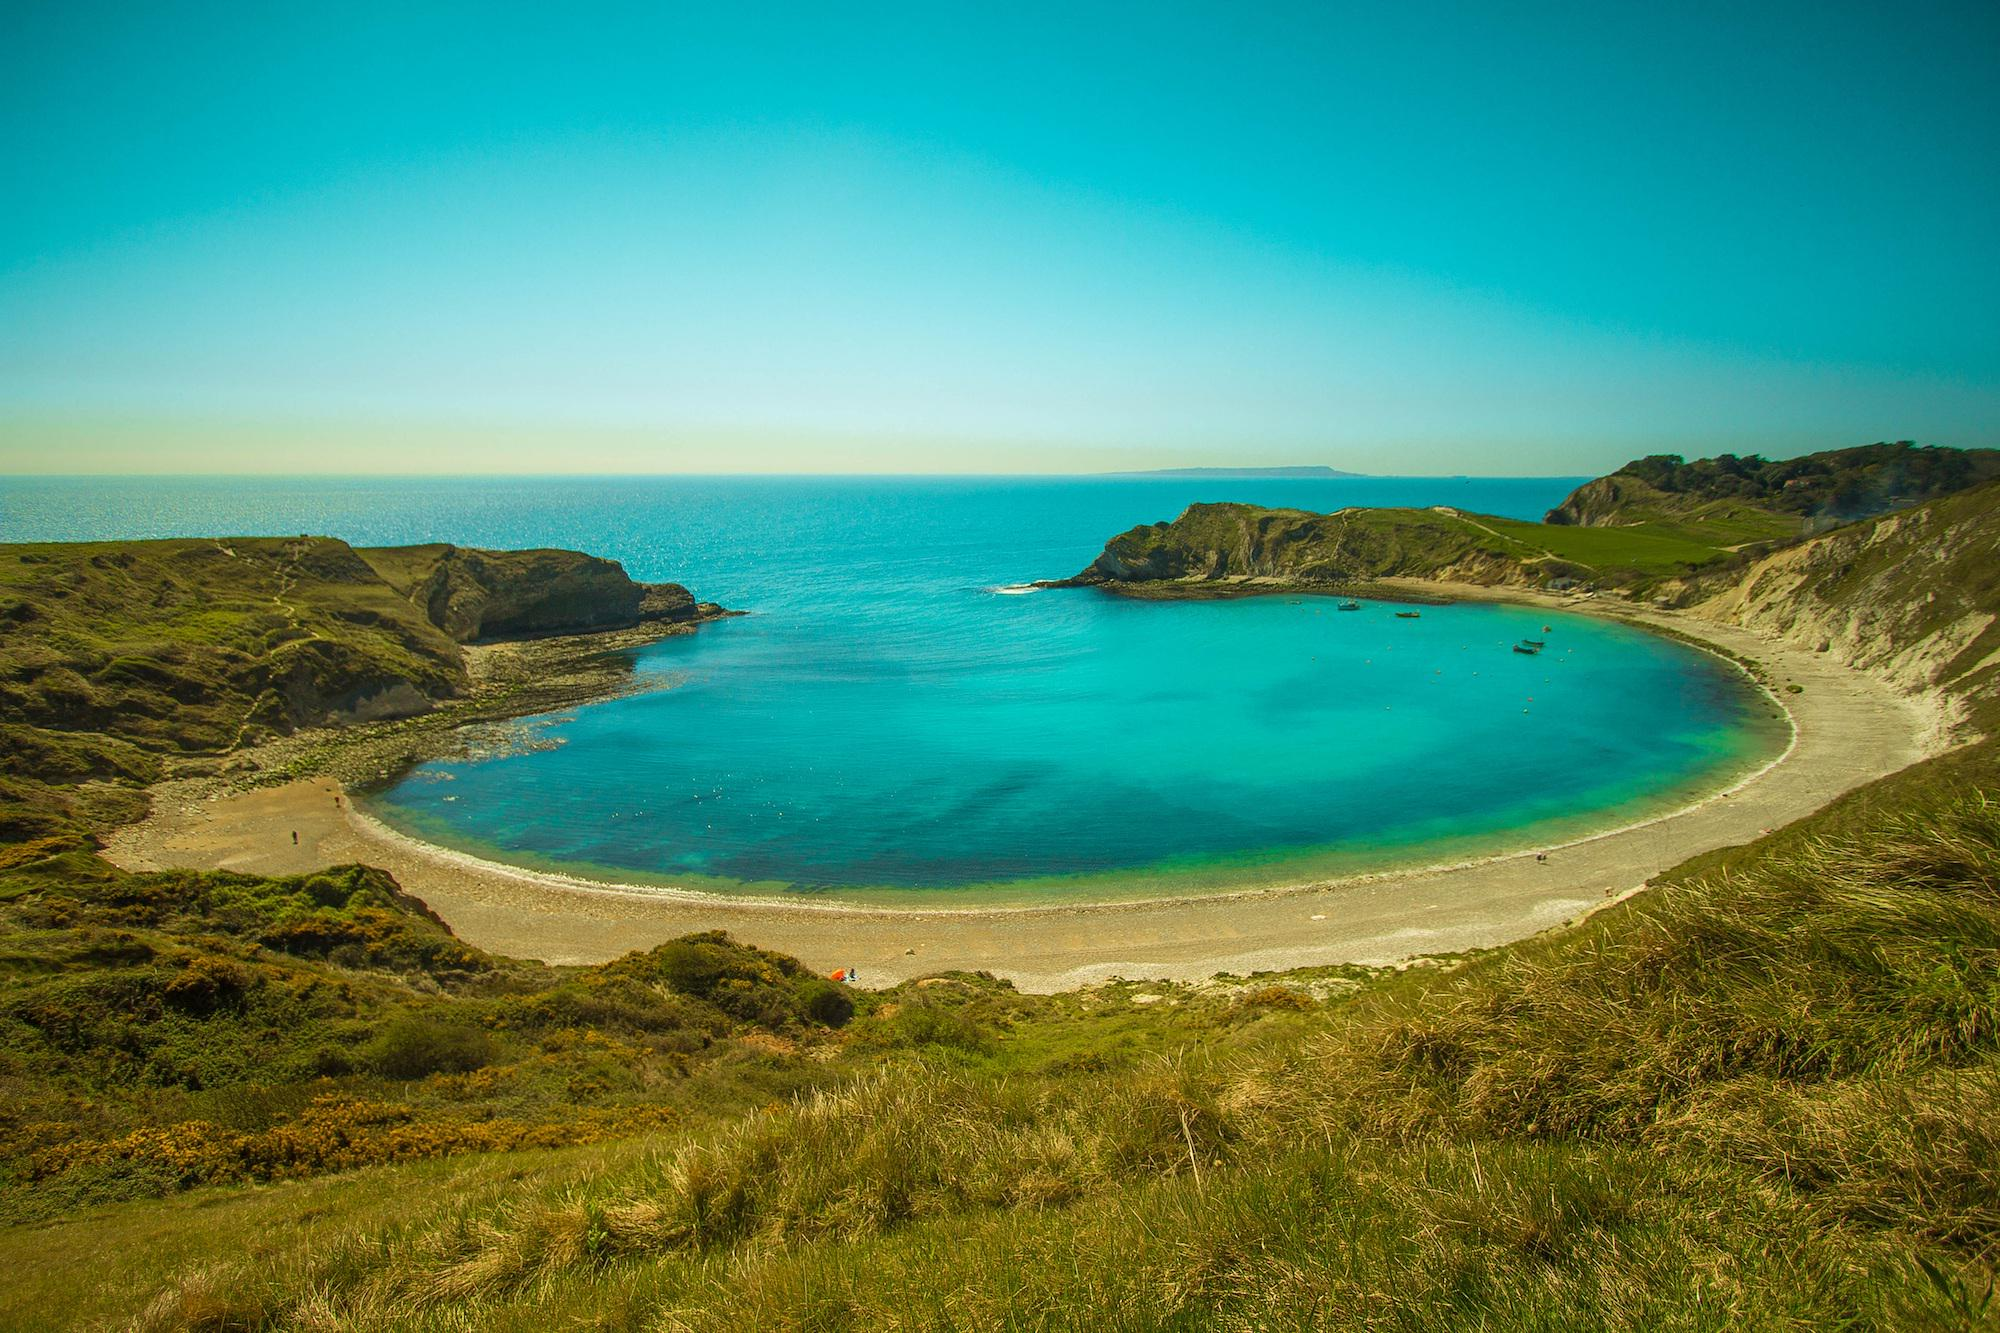 Lulworth Camping – Campsites near Luworth Cove, Dorset